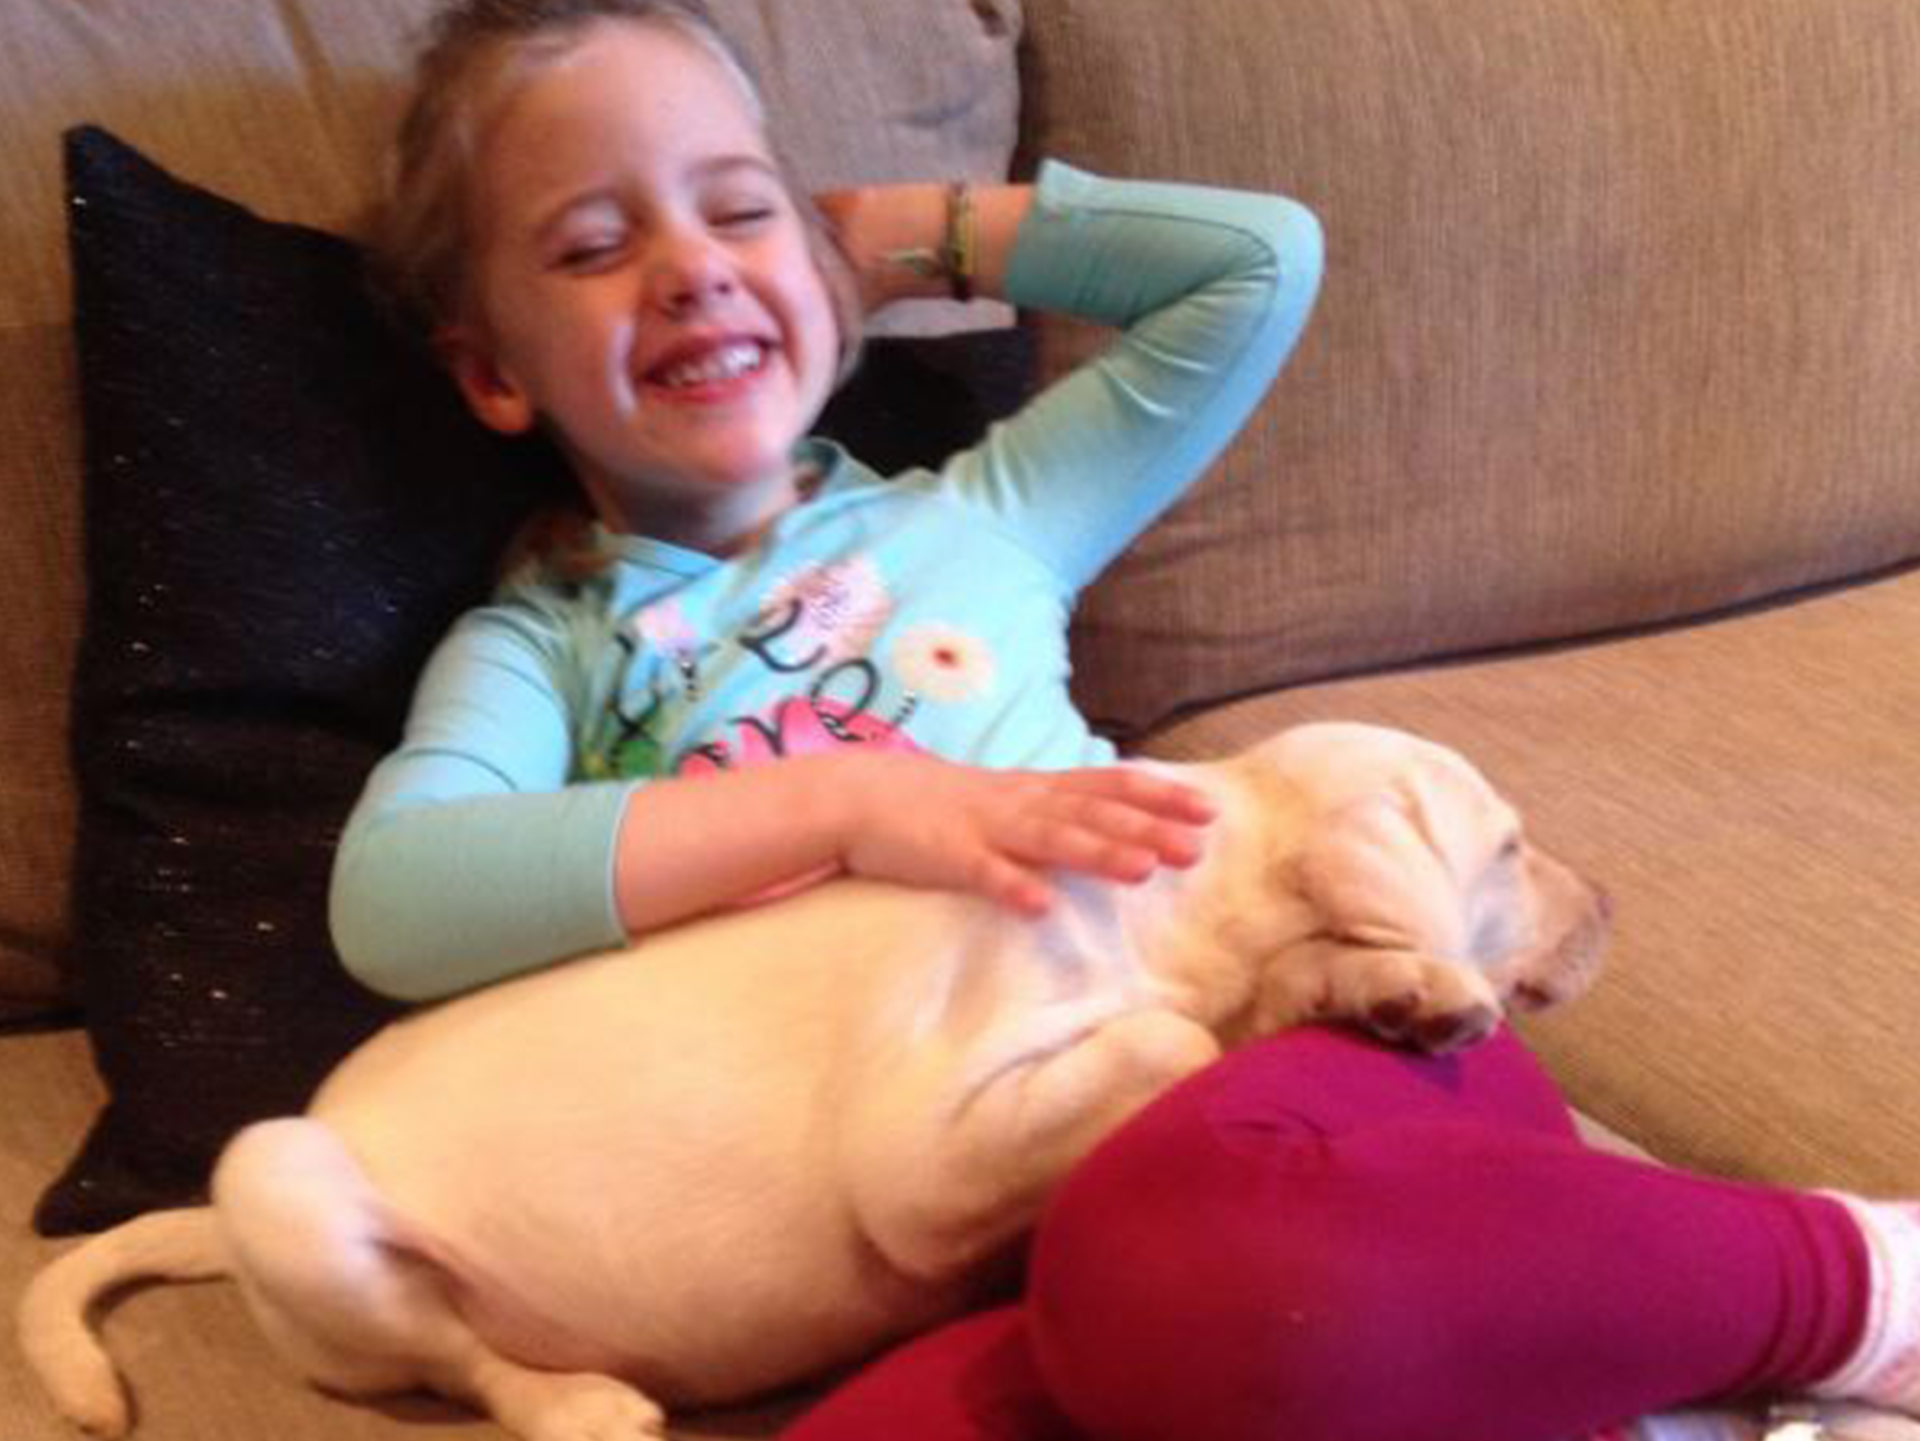 Thieves Steal Little Girl's Puppy And Then Return Her Three Days Later